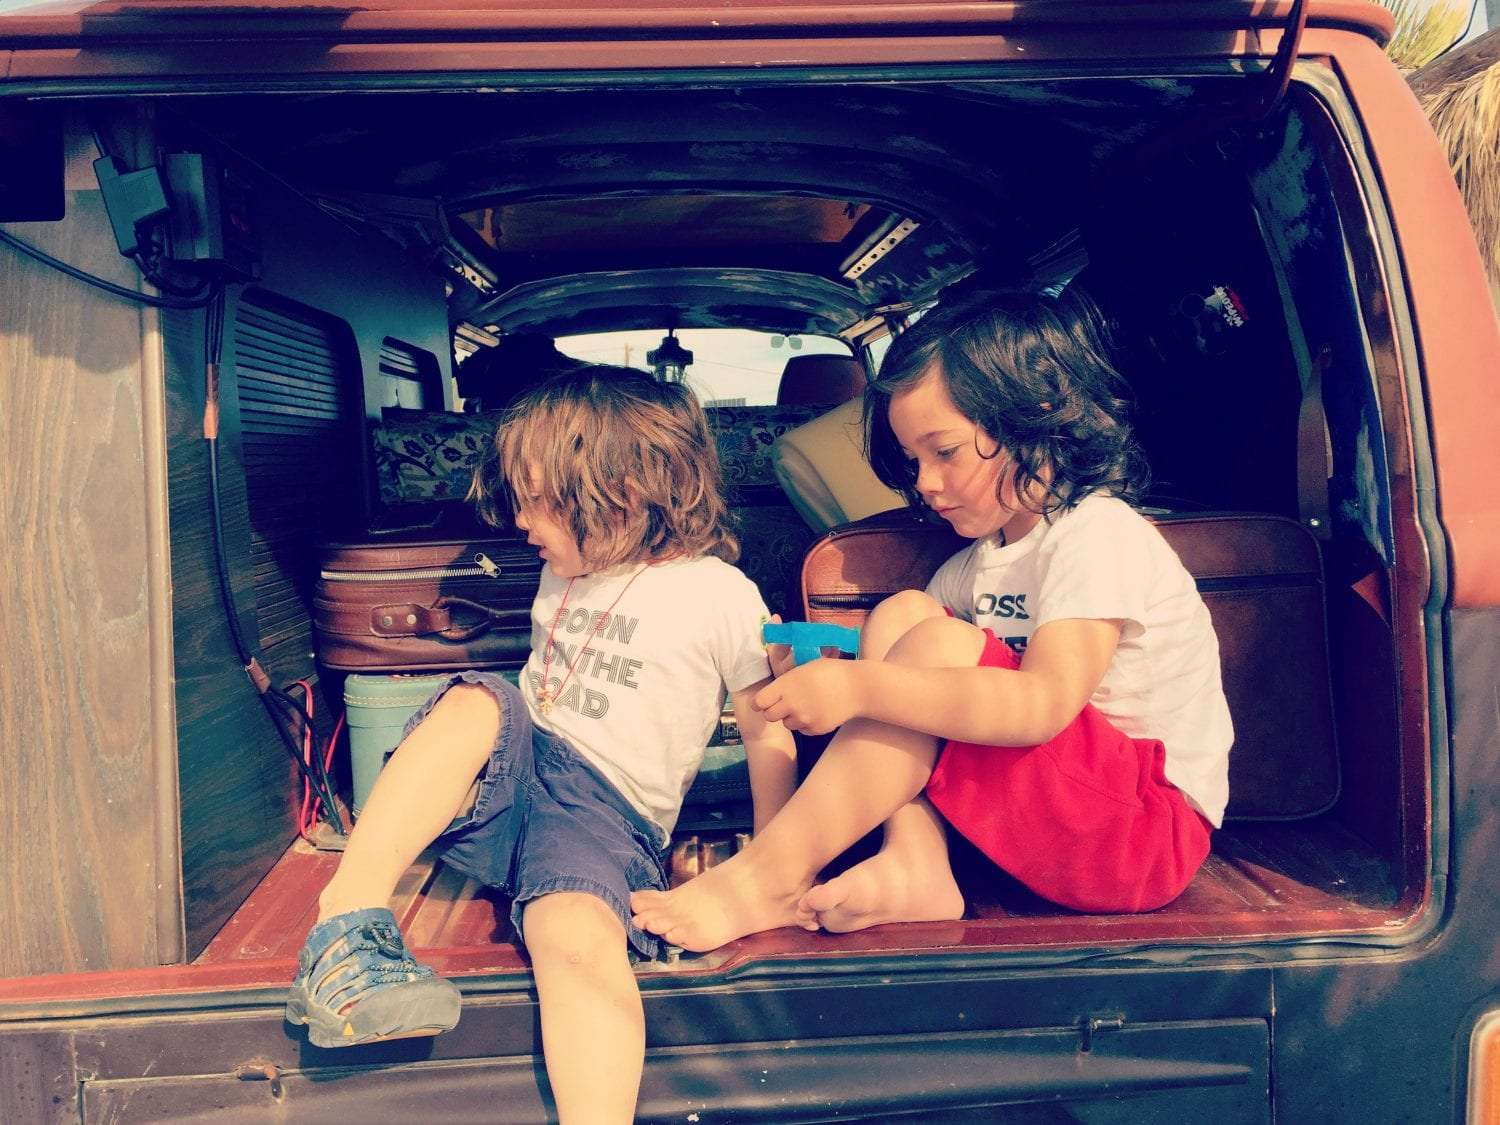 Scenes from a VW Bus: Brothers learn to play nicely on the back porch.